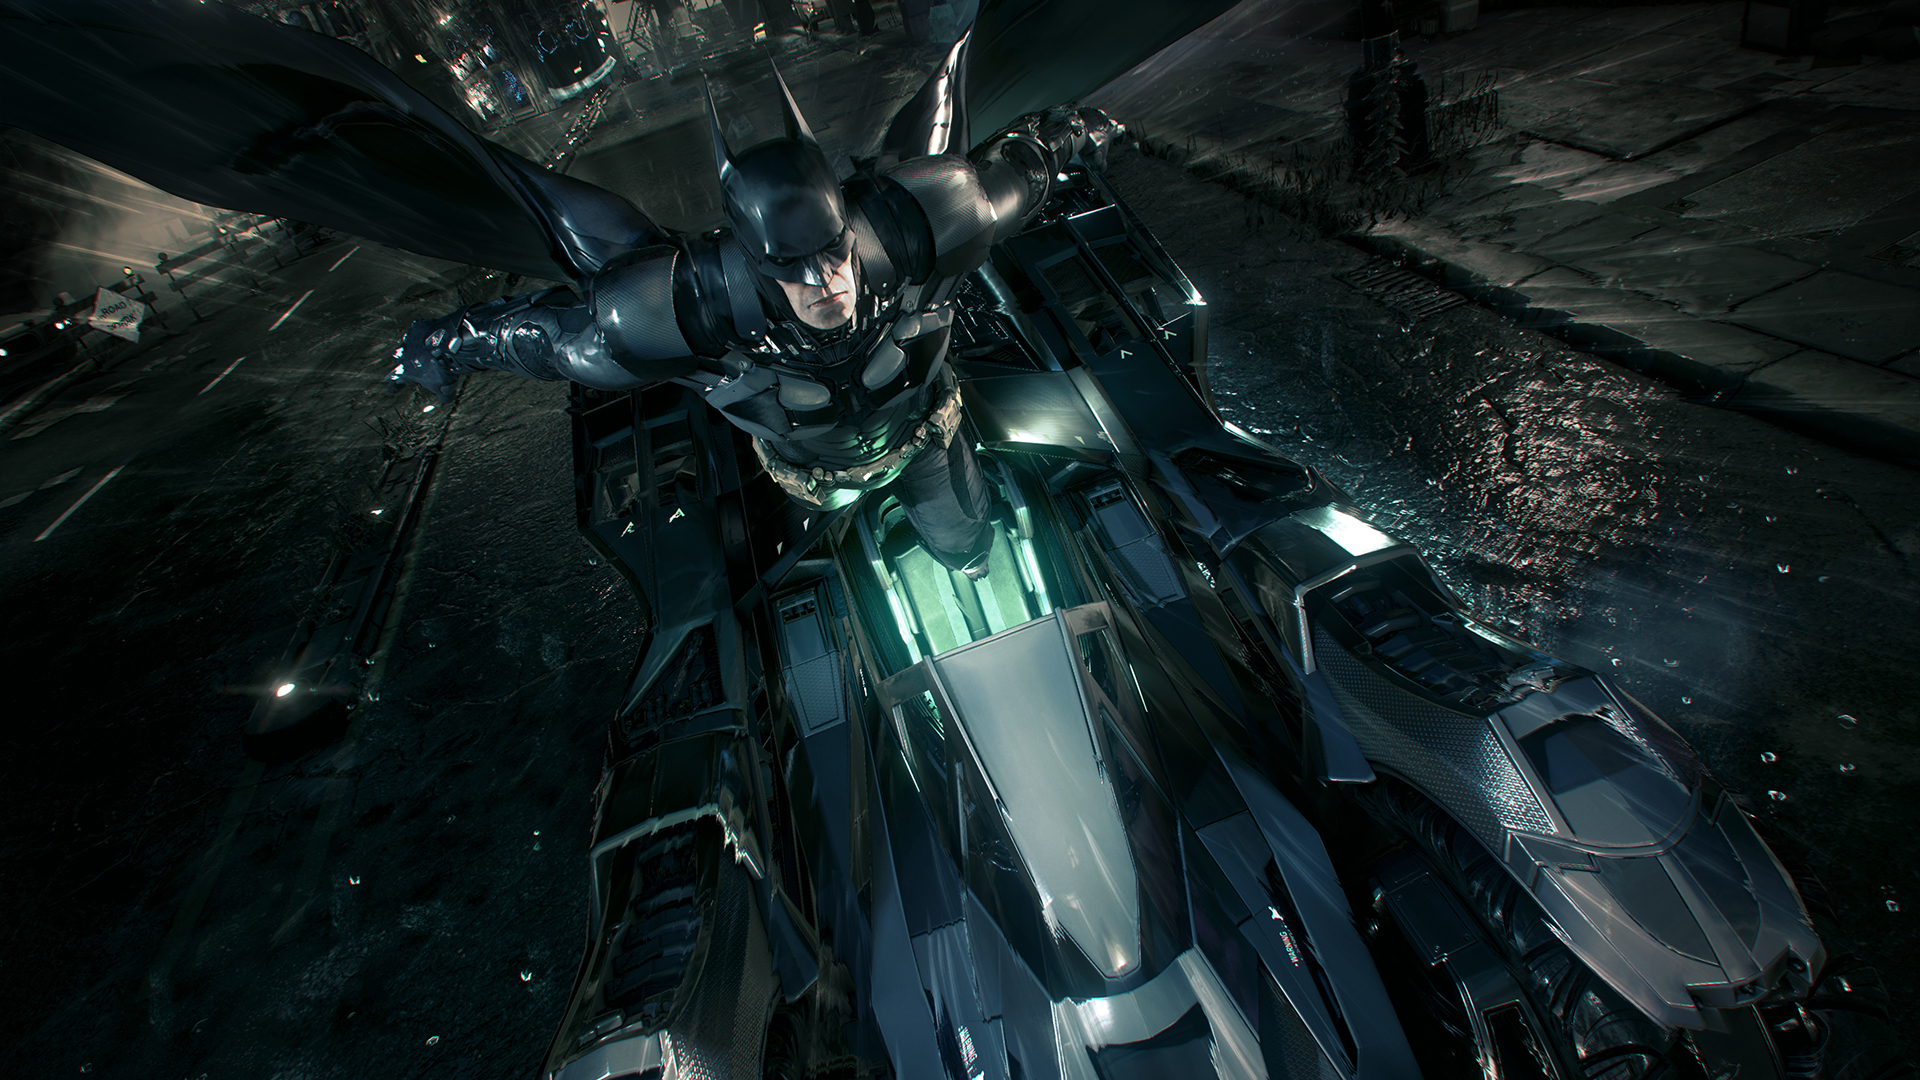 batman-arkham-knight-batmobile-eject-launch